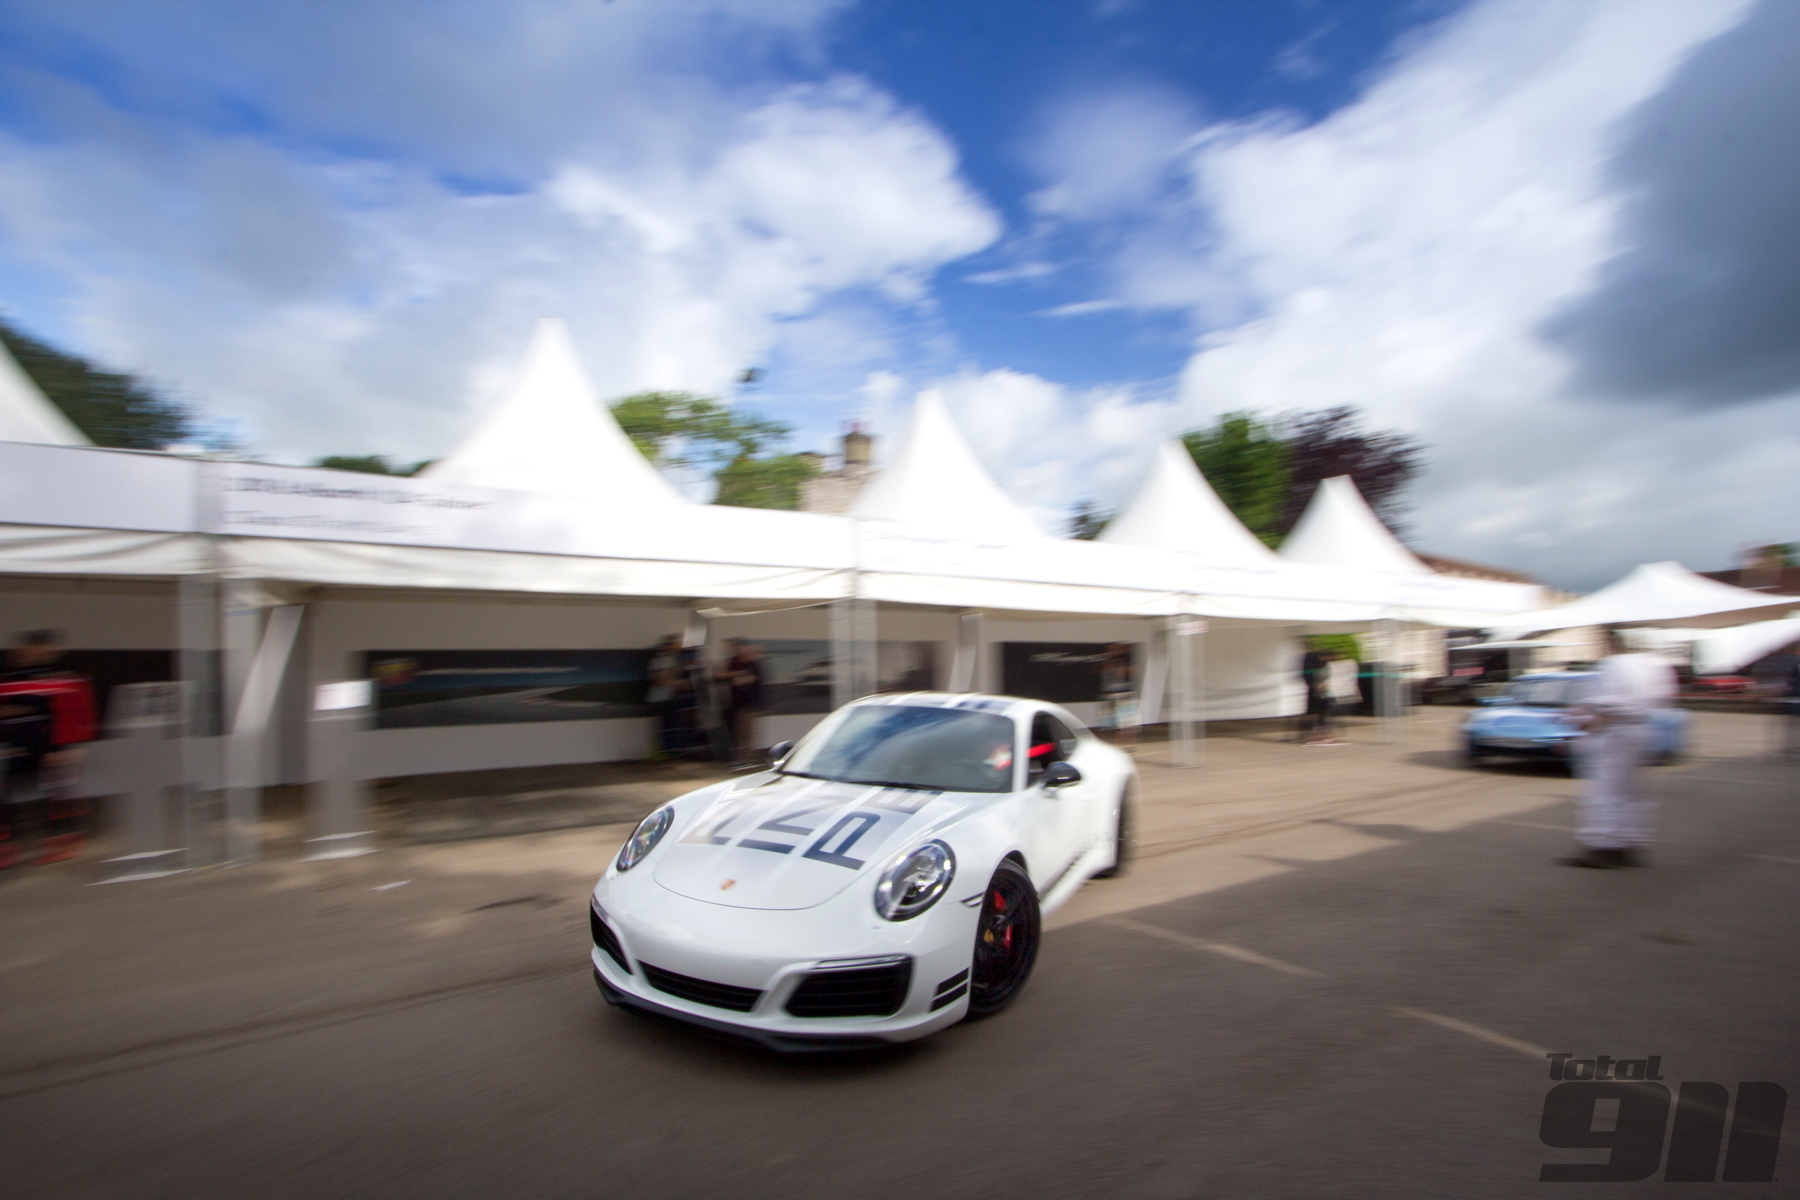 Total 911 Goodwood FoS 2016 (29 of 38)